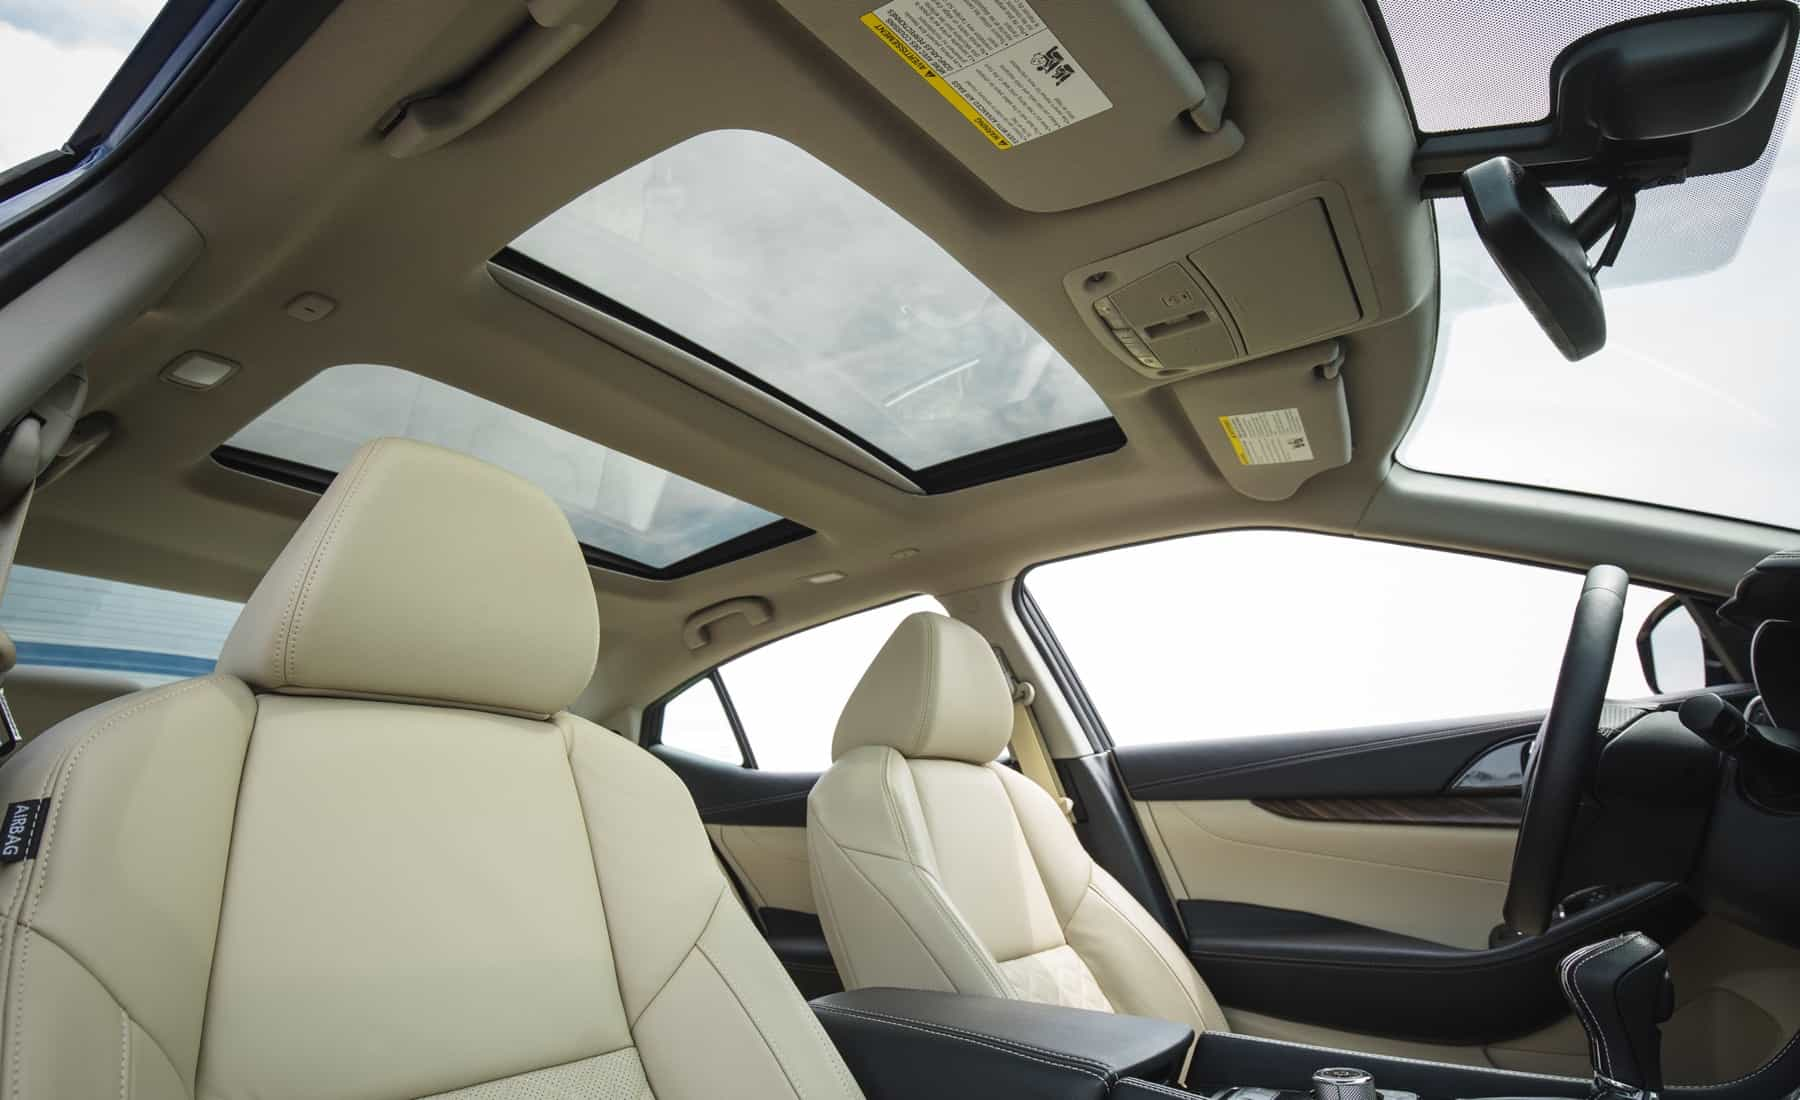 2017 Nissan Maxima Interior View Sunroof (Photo 33 of 40)